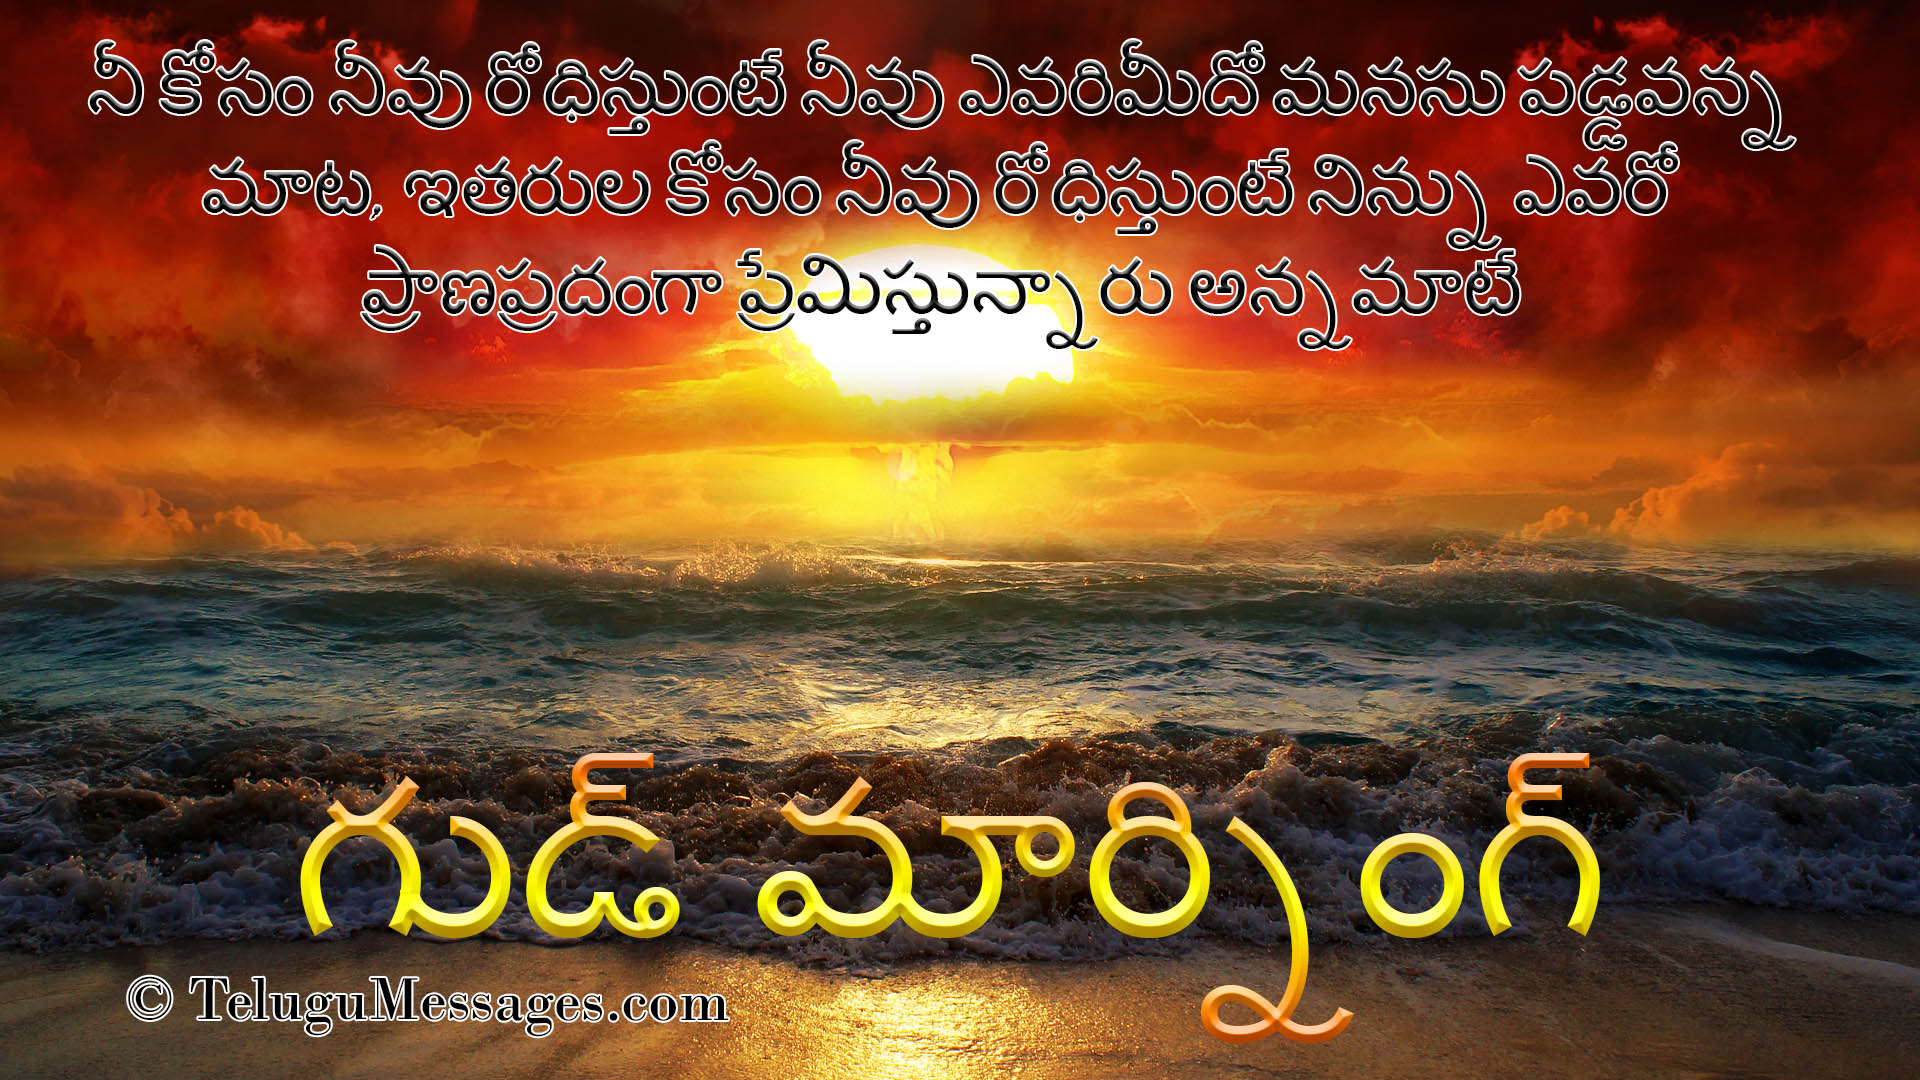 Moral Quotes About Love Telugu Good Morning Quotes Good Night Good Evening Pictures